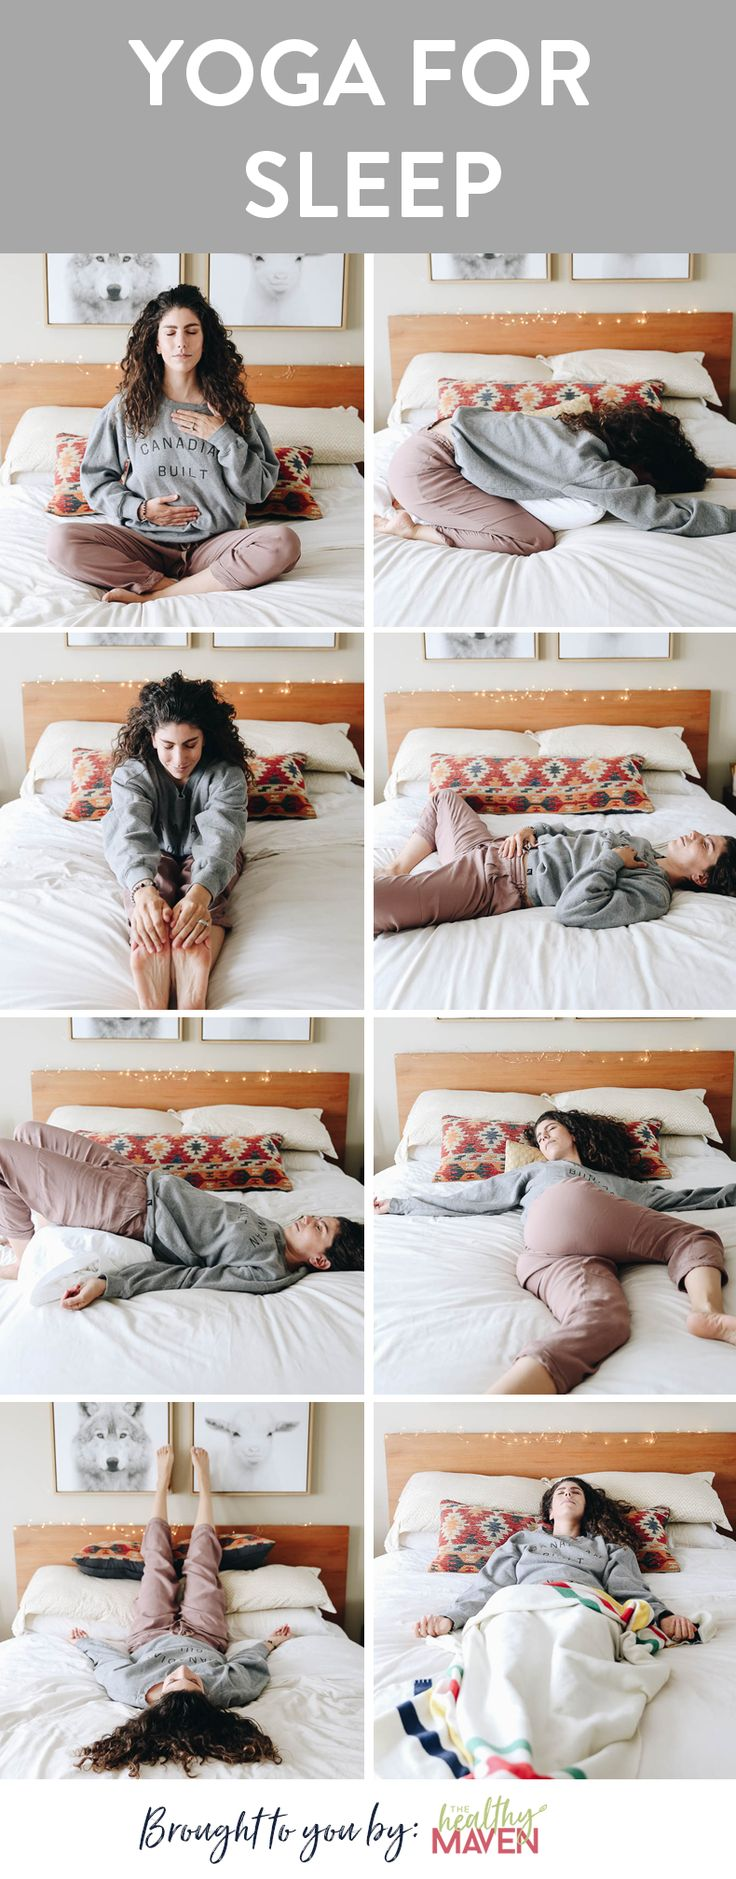 Struggling with sleep issues or looking to build better sleep hygiene? Try yoga … – The Healthy Maven